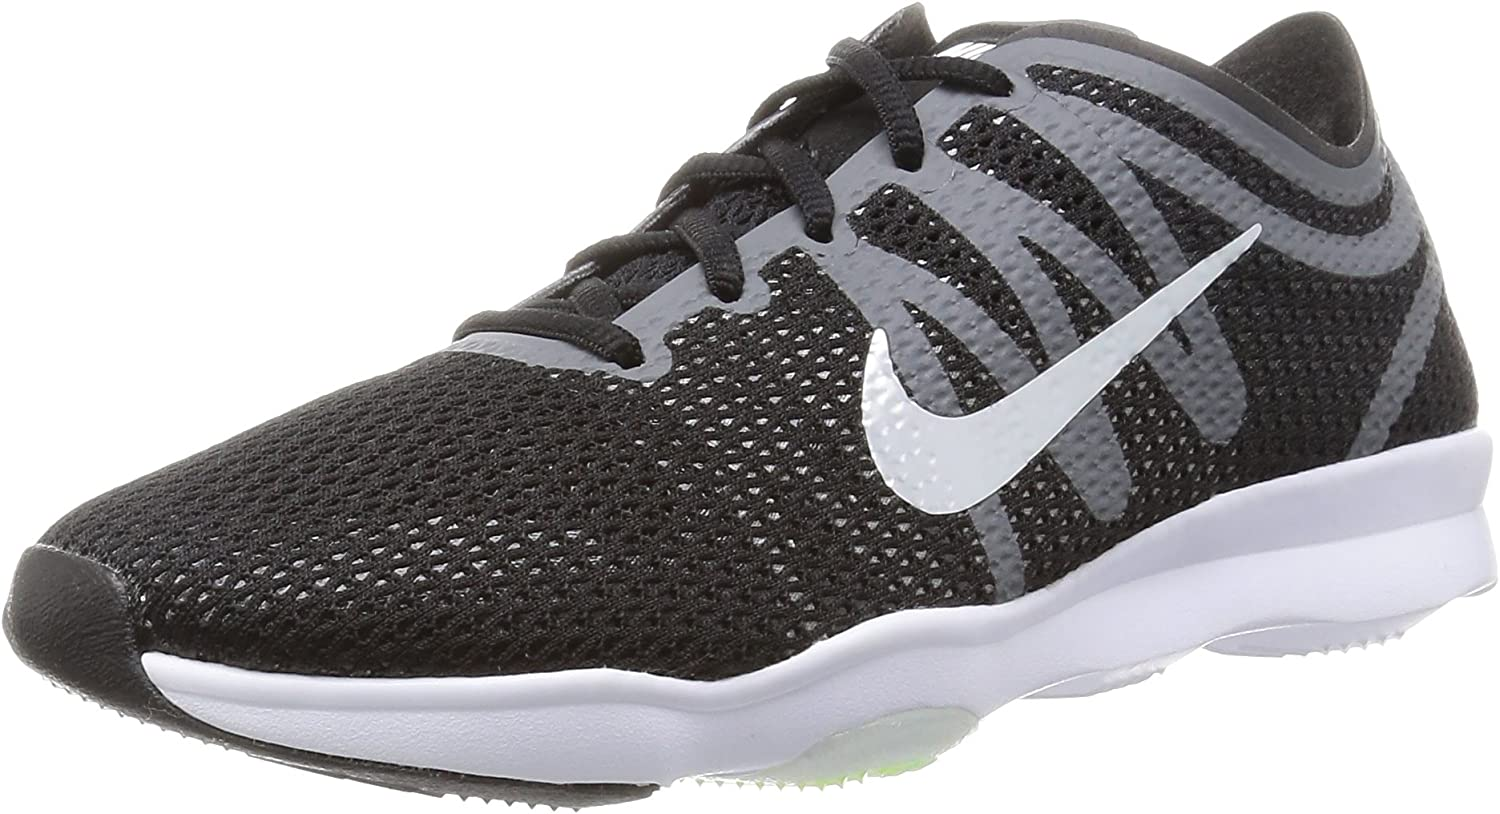 Nike Women's Air Zoom Fit 2 Training shoes